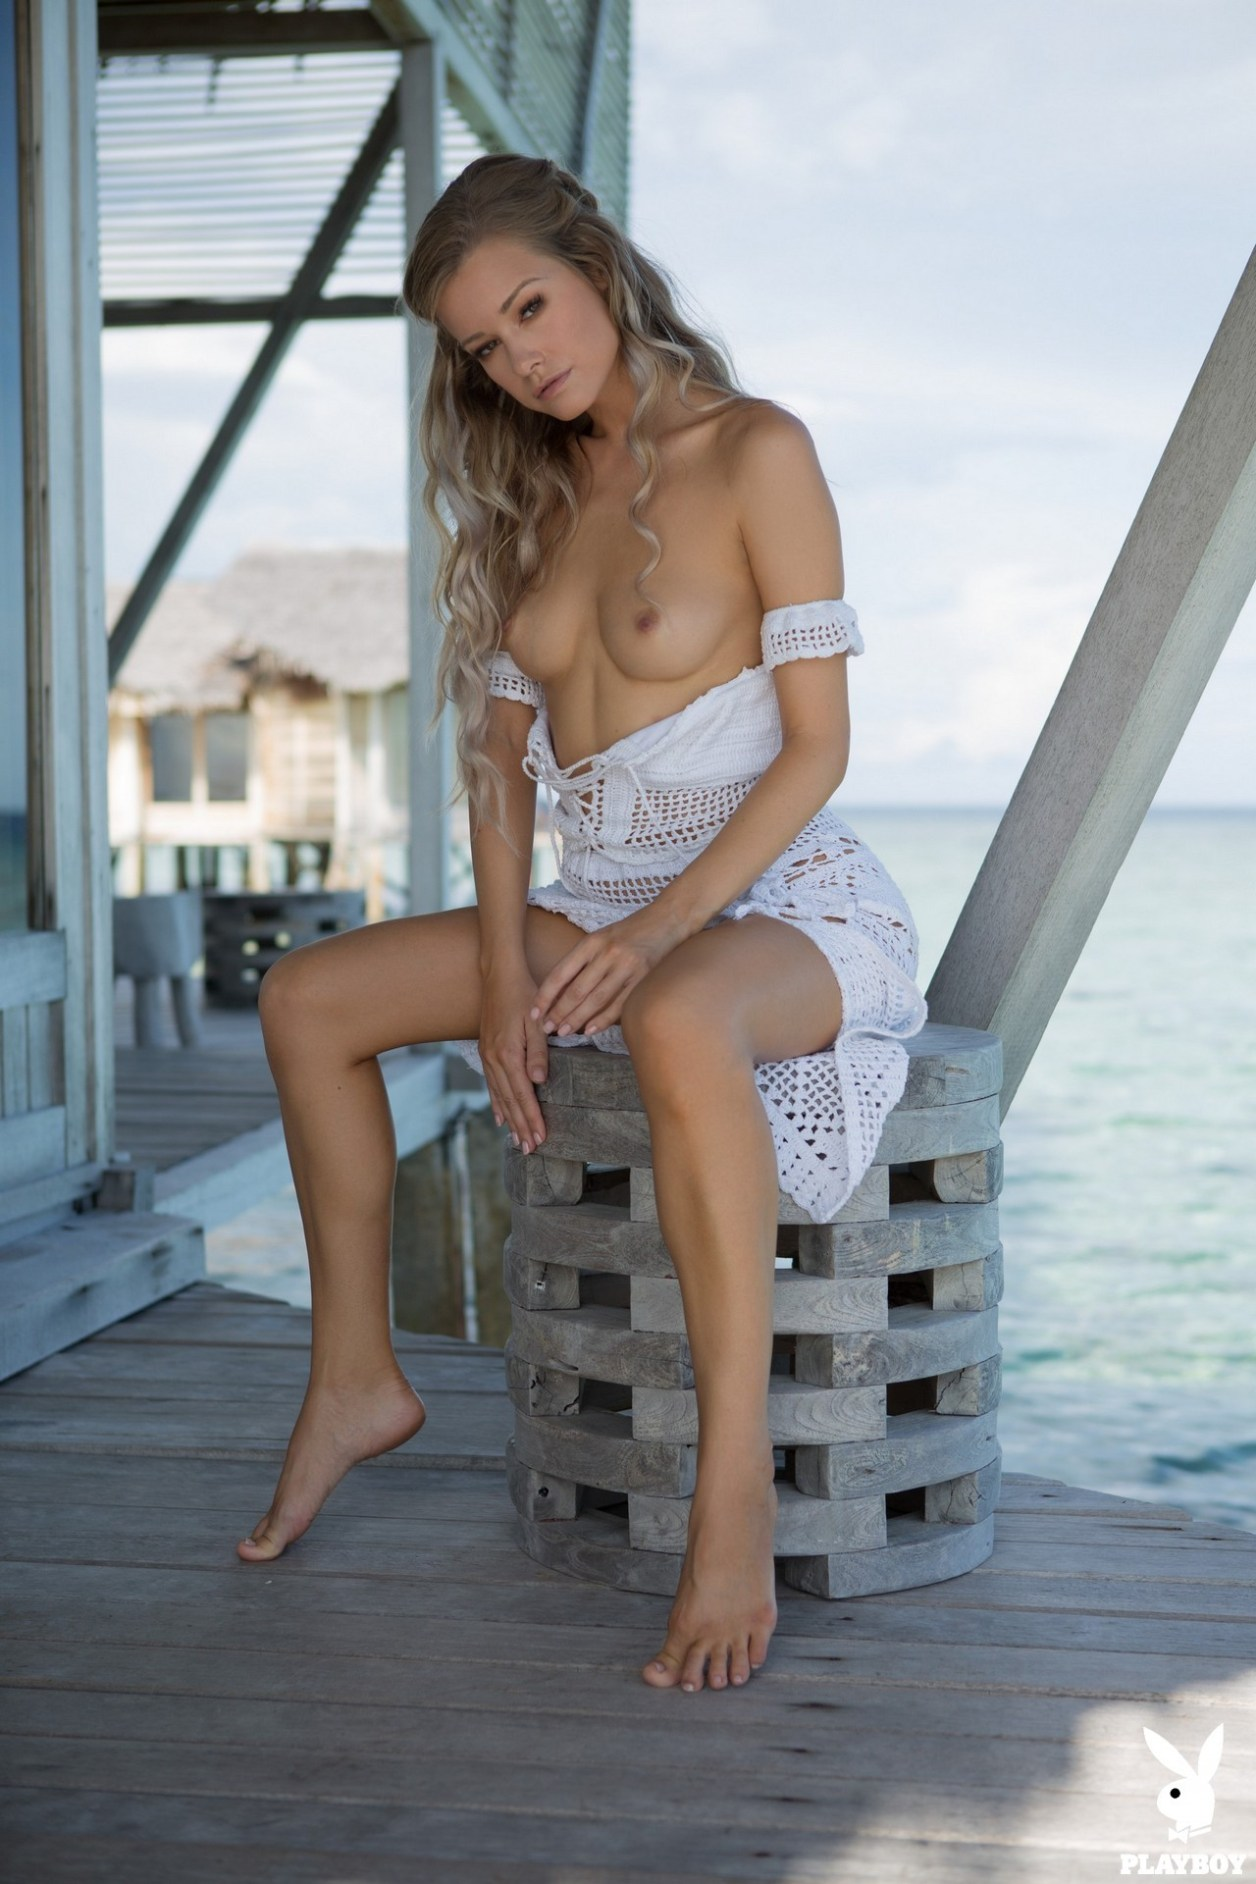 [Playboy plus] Olivia Preston in Edge of Excellence 99176